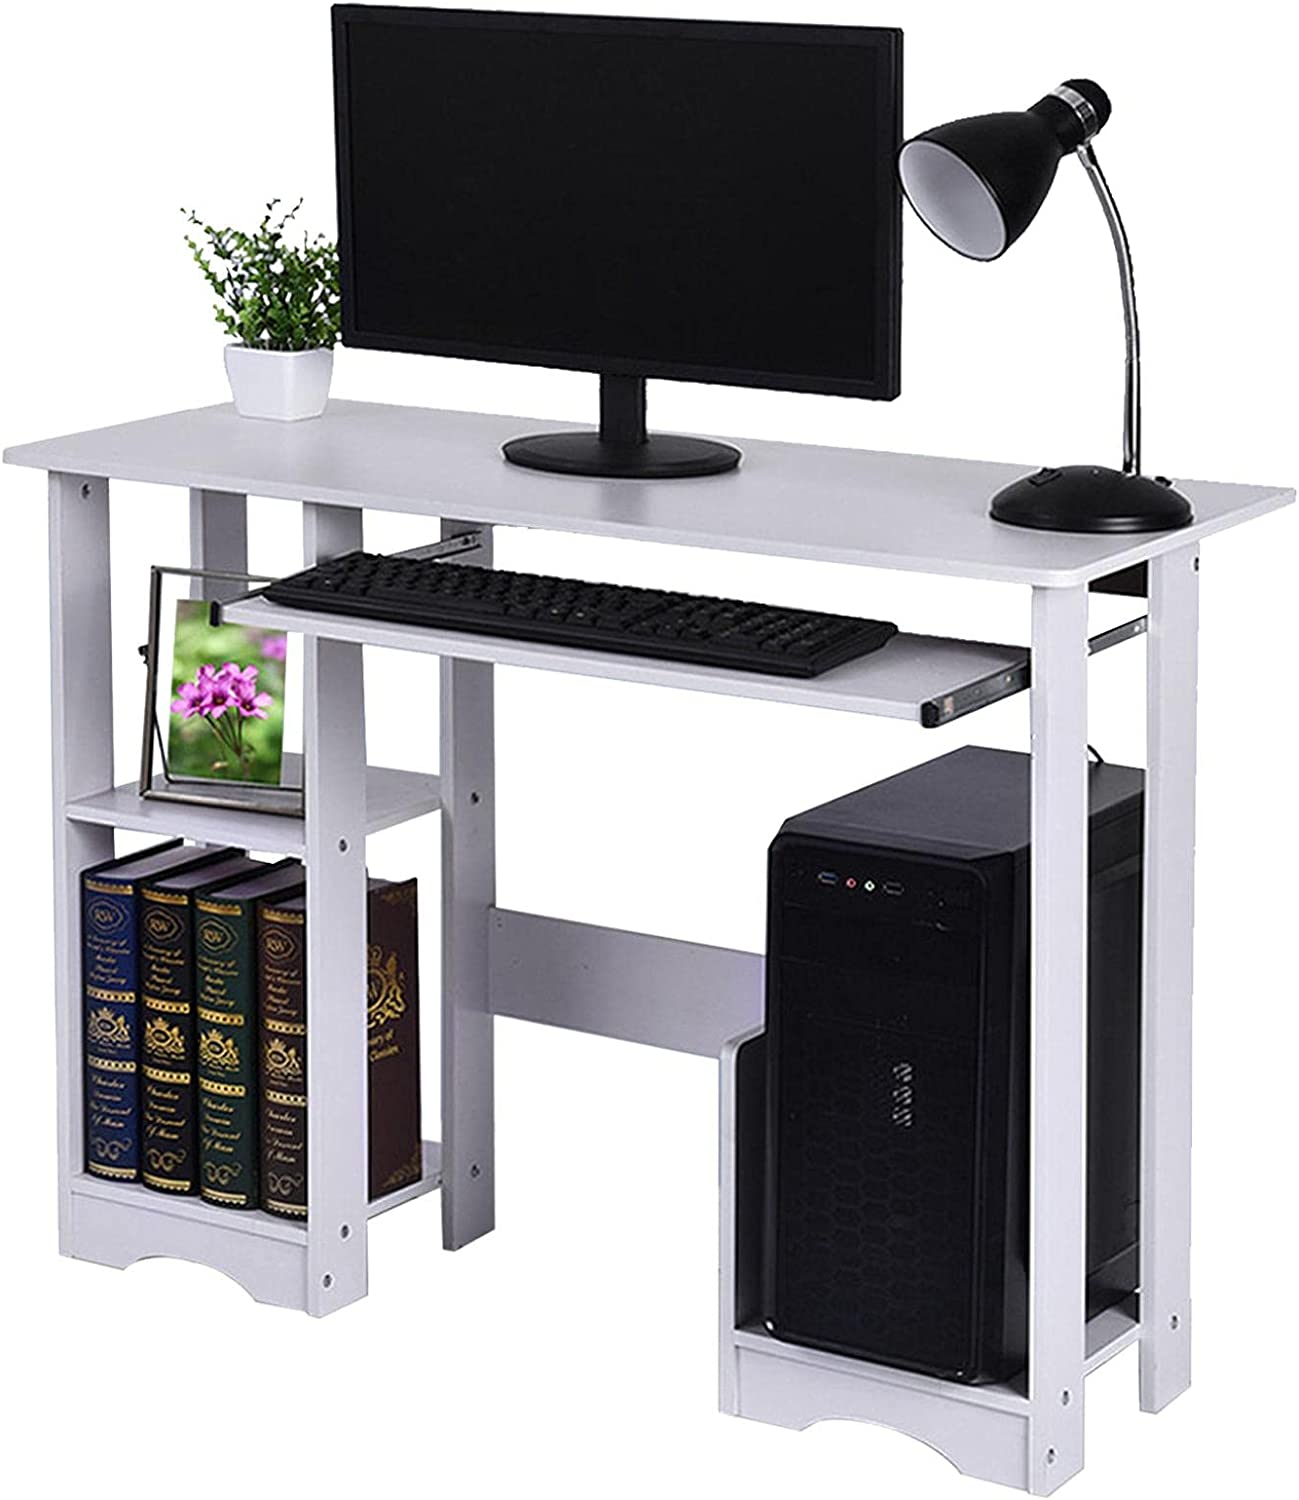 Computer Desk with Pull Out Keyboard-UINKISY 35inch Limited price sale Minim Modern shop